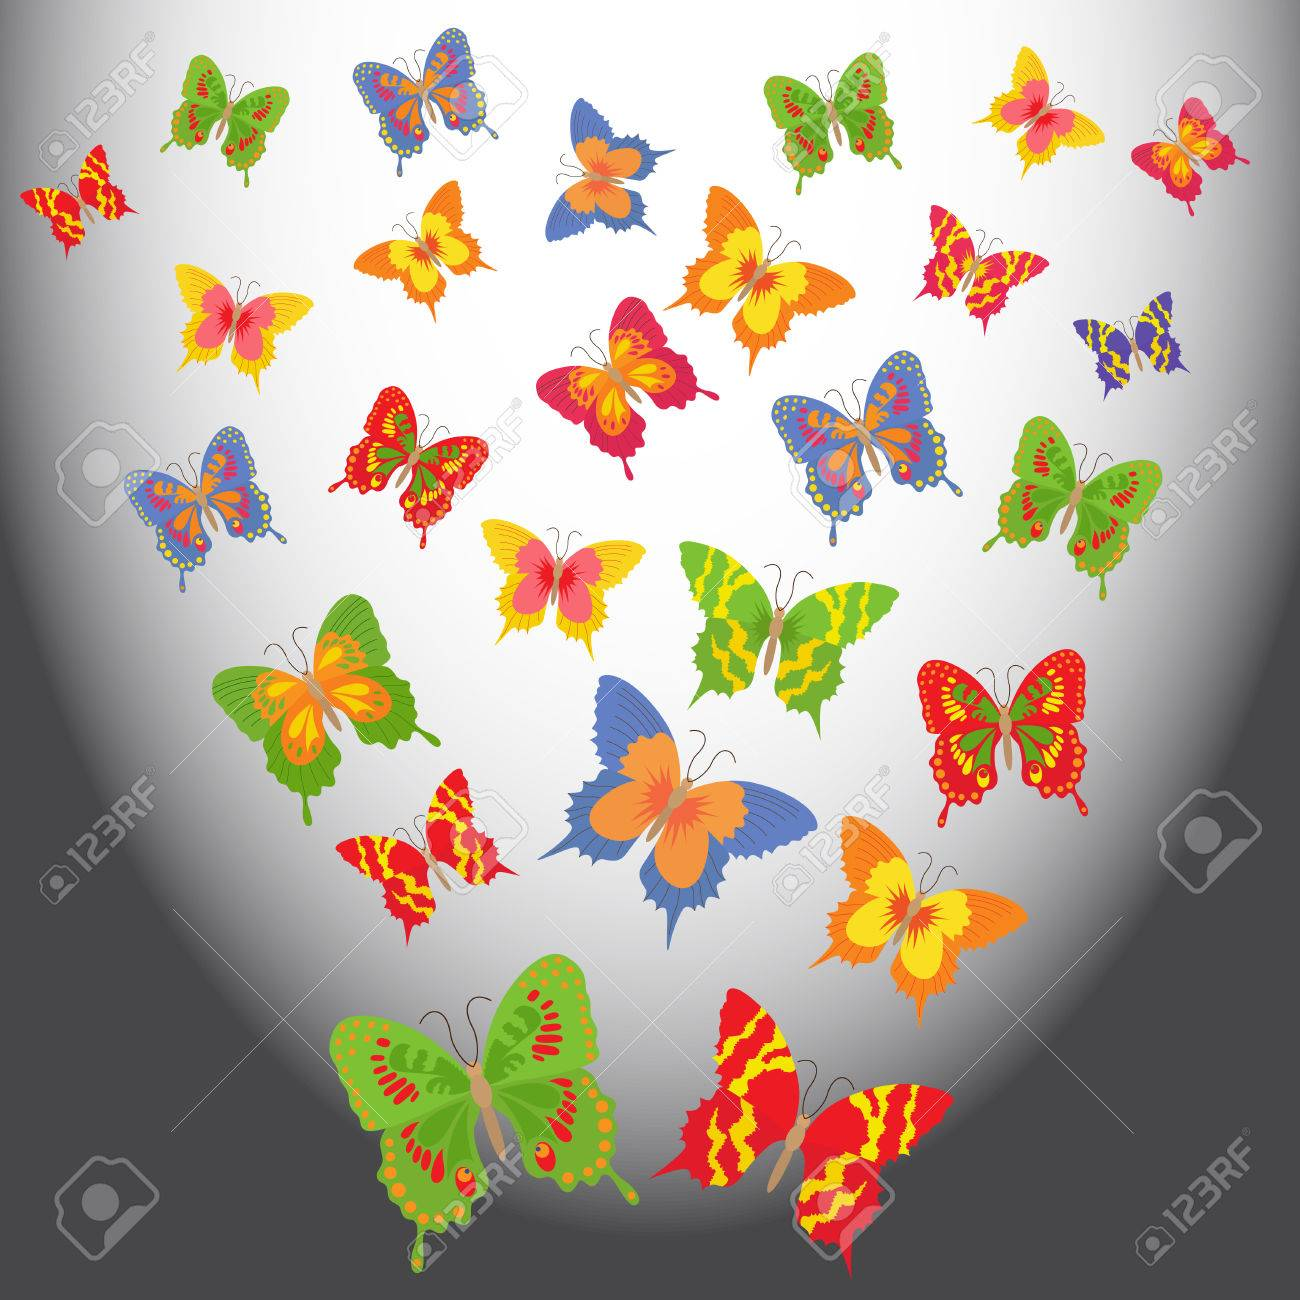 Colorful Animated Butterflies Flying In A Light Space Hand Drawing Vector Illustration Stock